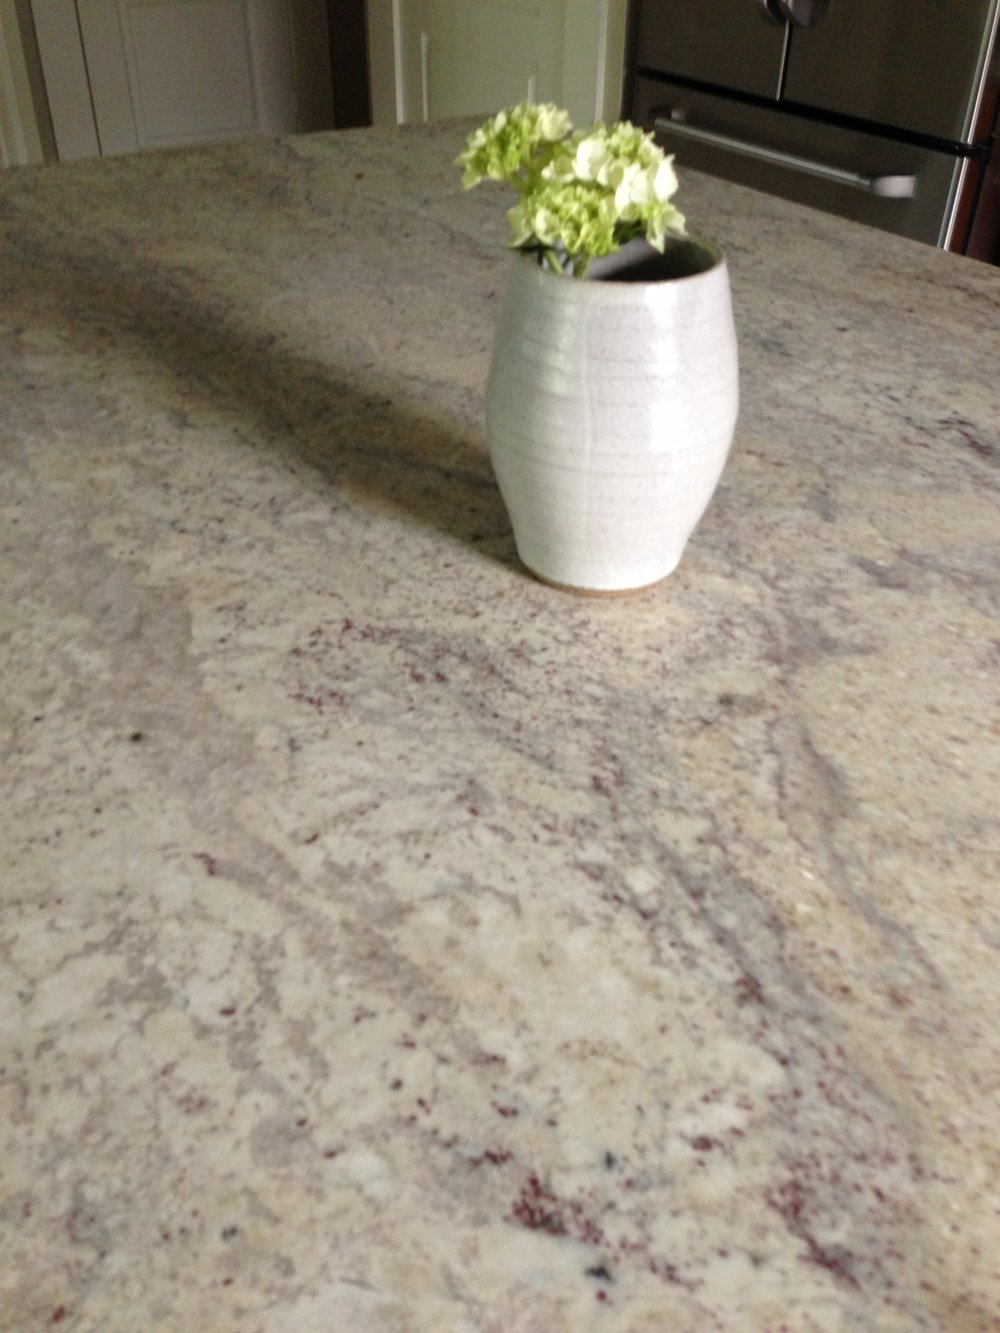 Kashmire White Granite in honed finish, Kitchen Remodel - Carla Aston, Designer